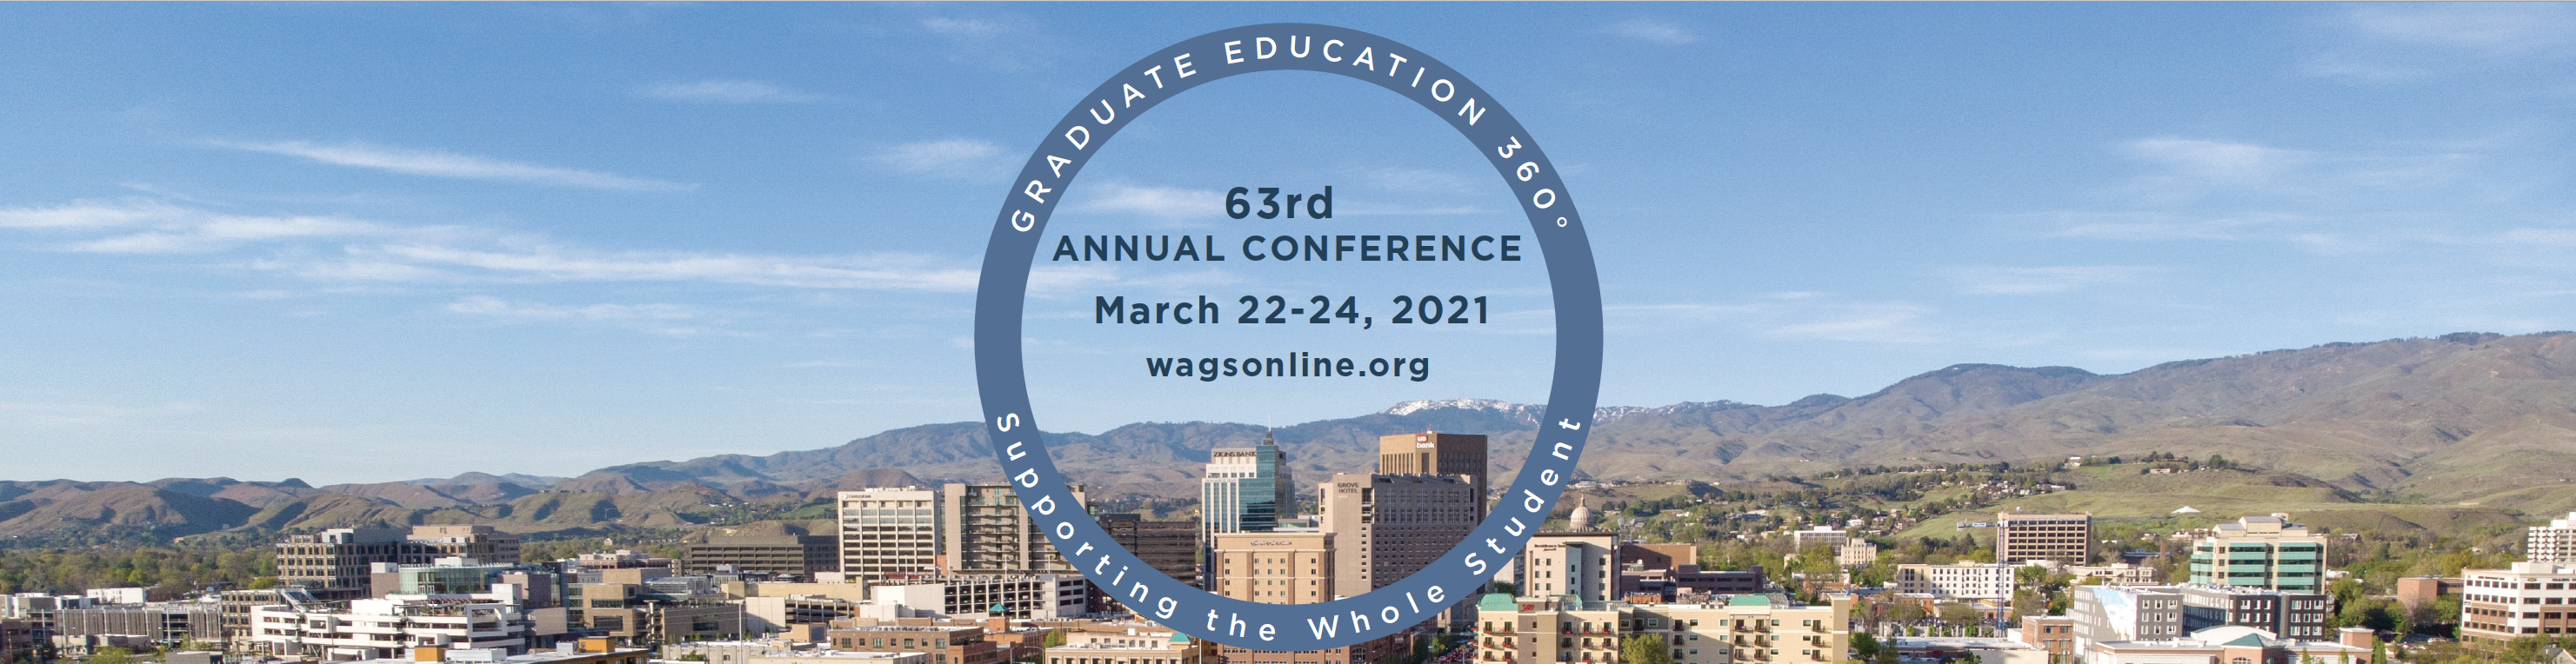 63rd Annual Conference